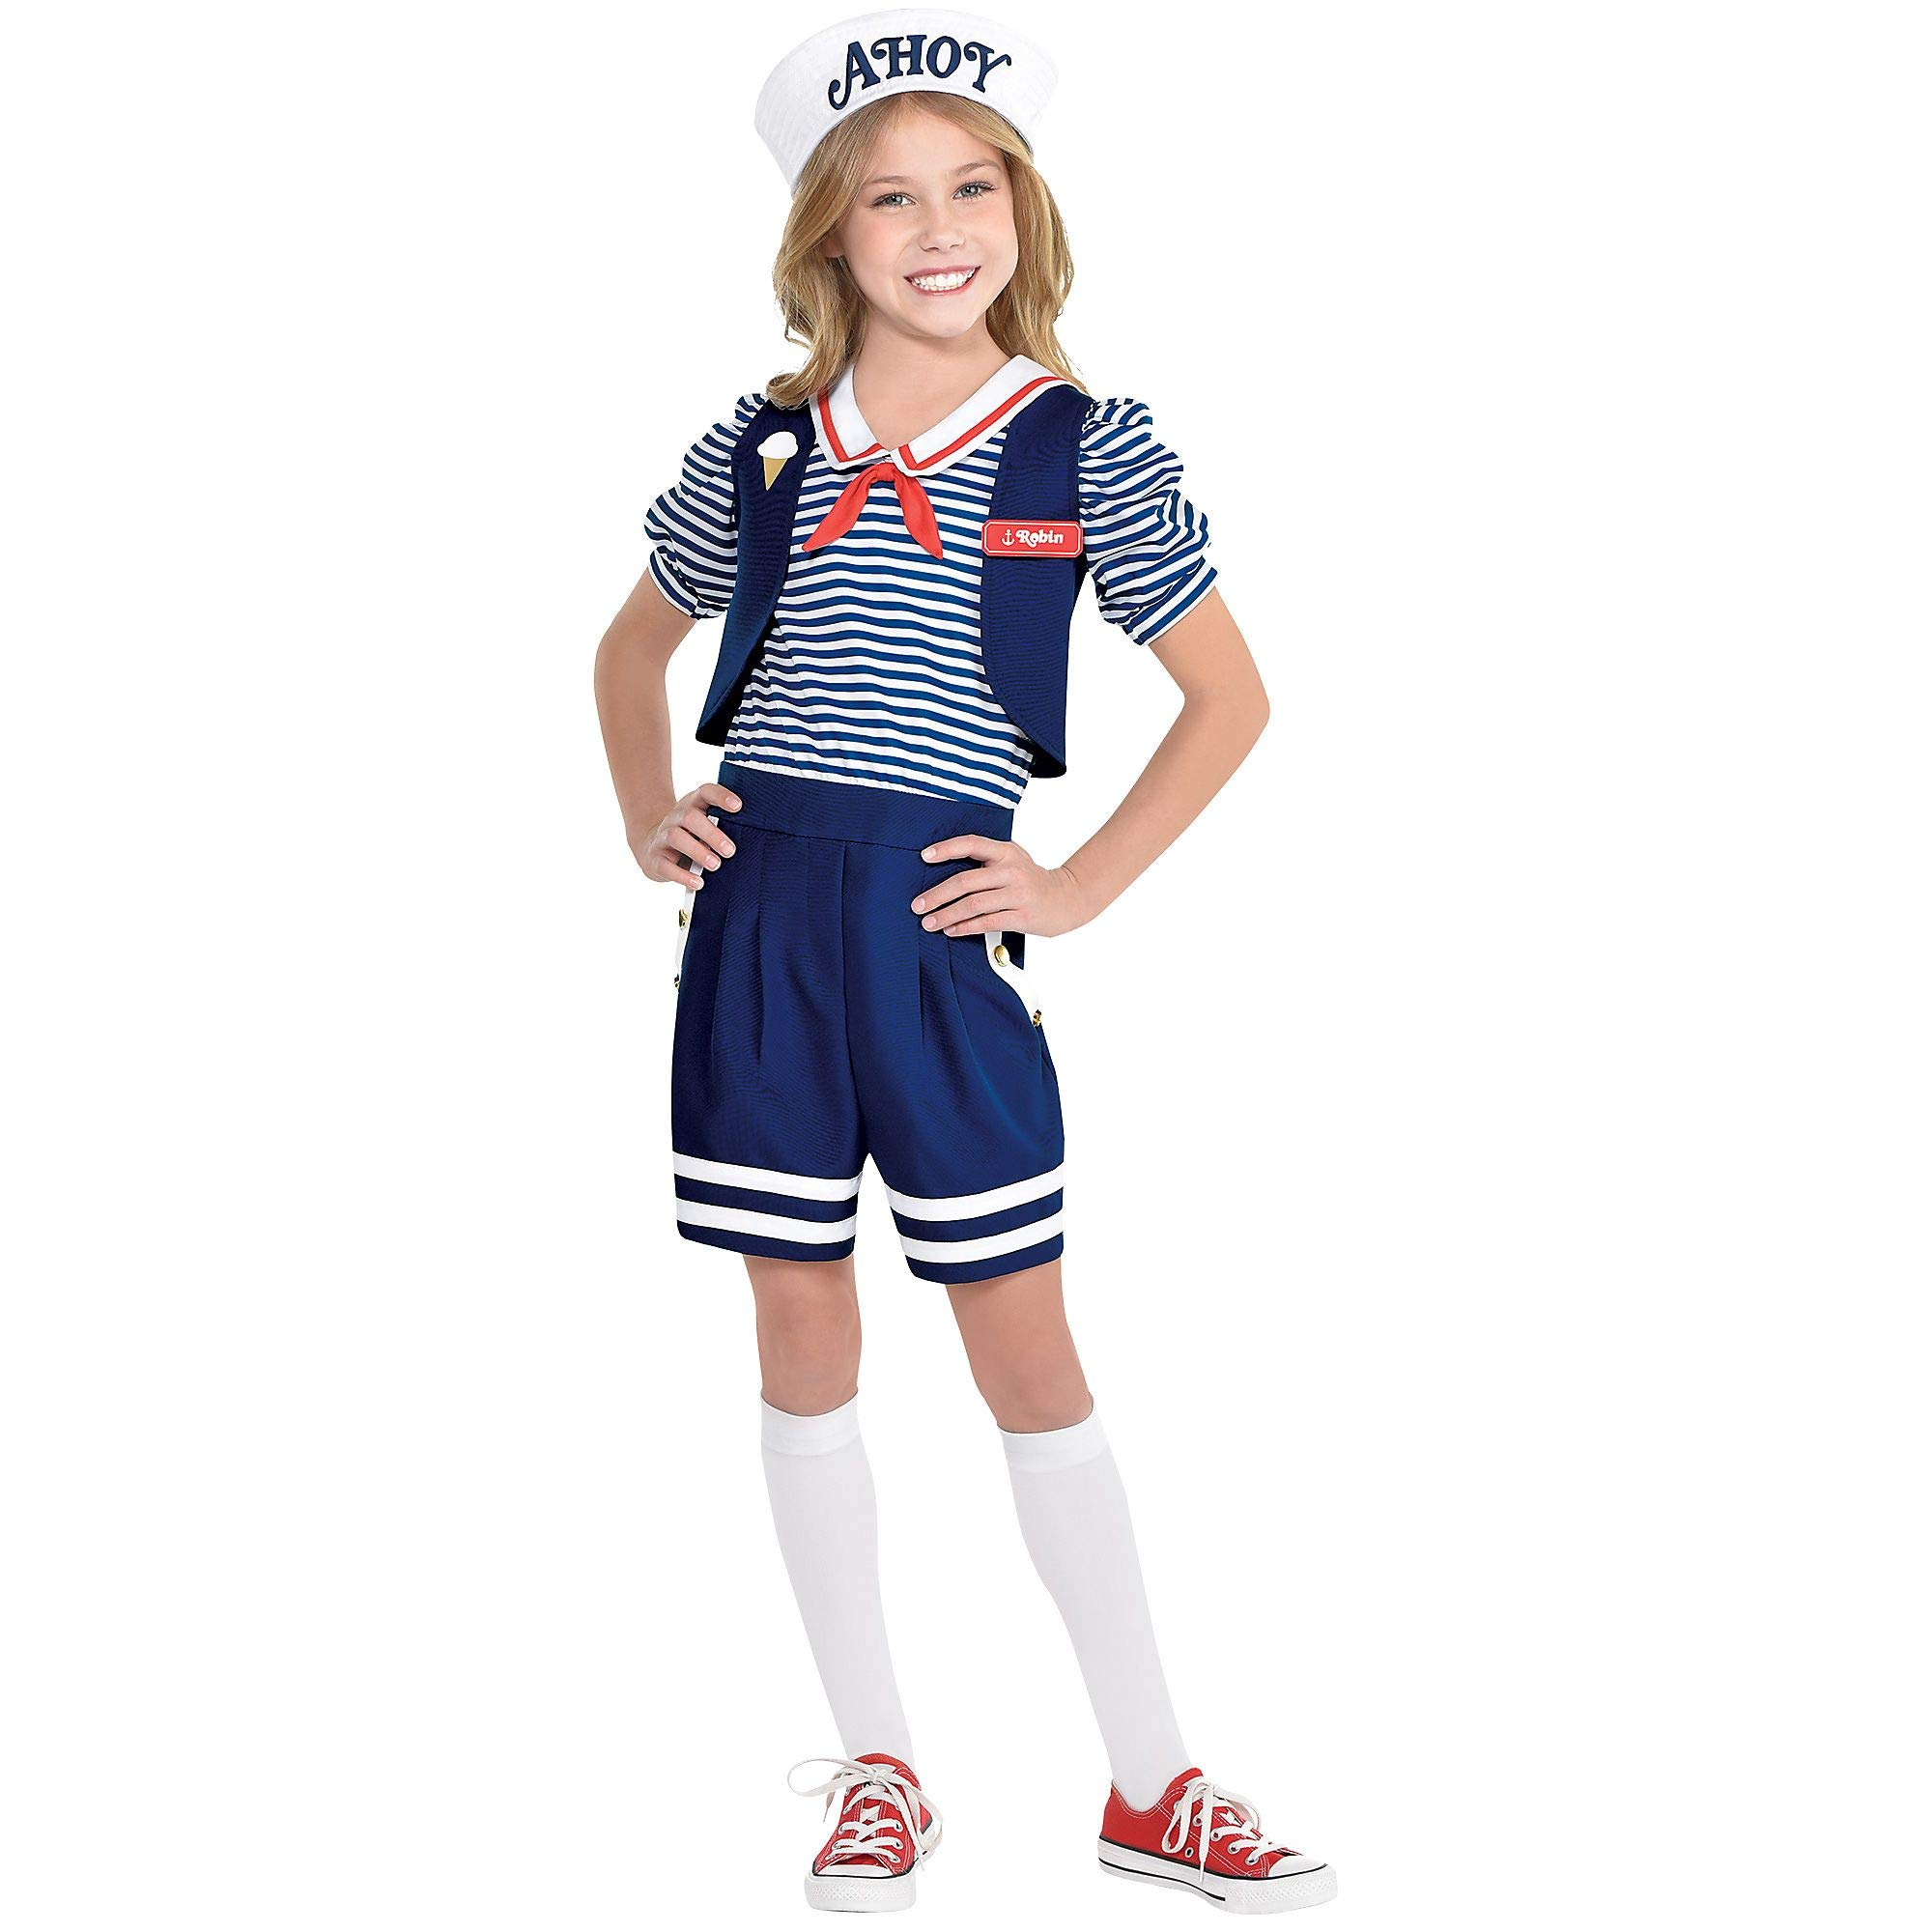 Party City Stranger Things Robin Scoops Ahoy Costume for Children, Size Large, Includes a Romper, a Hat, and Name Badge